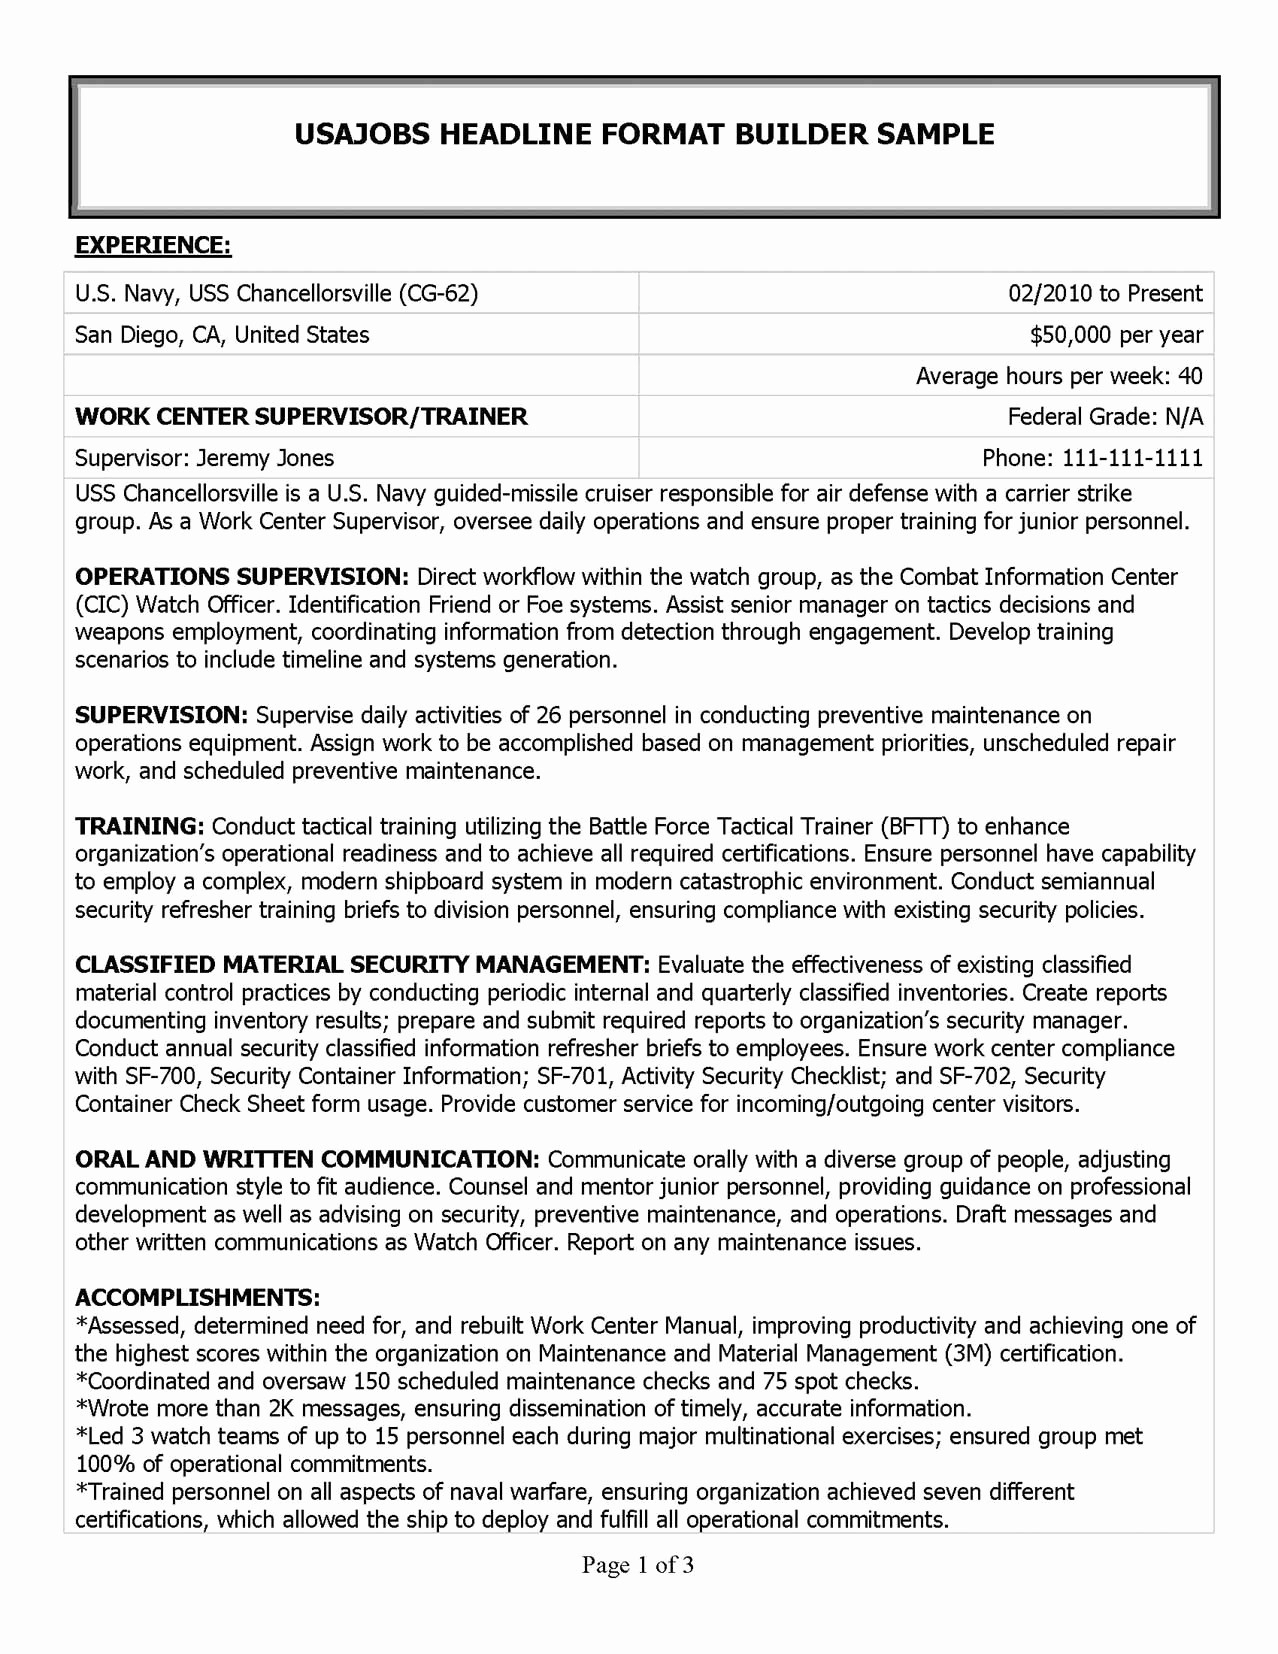 Supply Chain Resume Examples - Supply Chain Resume Examples Staggering Example Job Resume Awesome